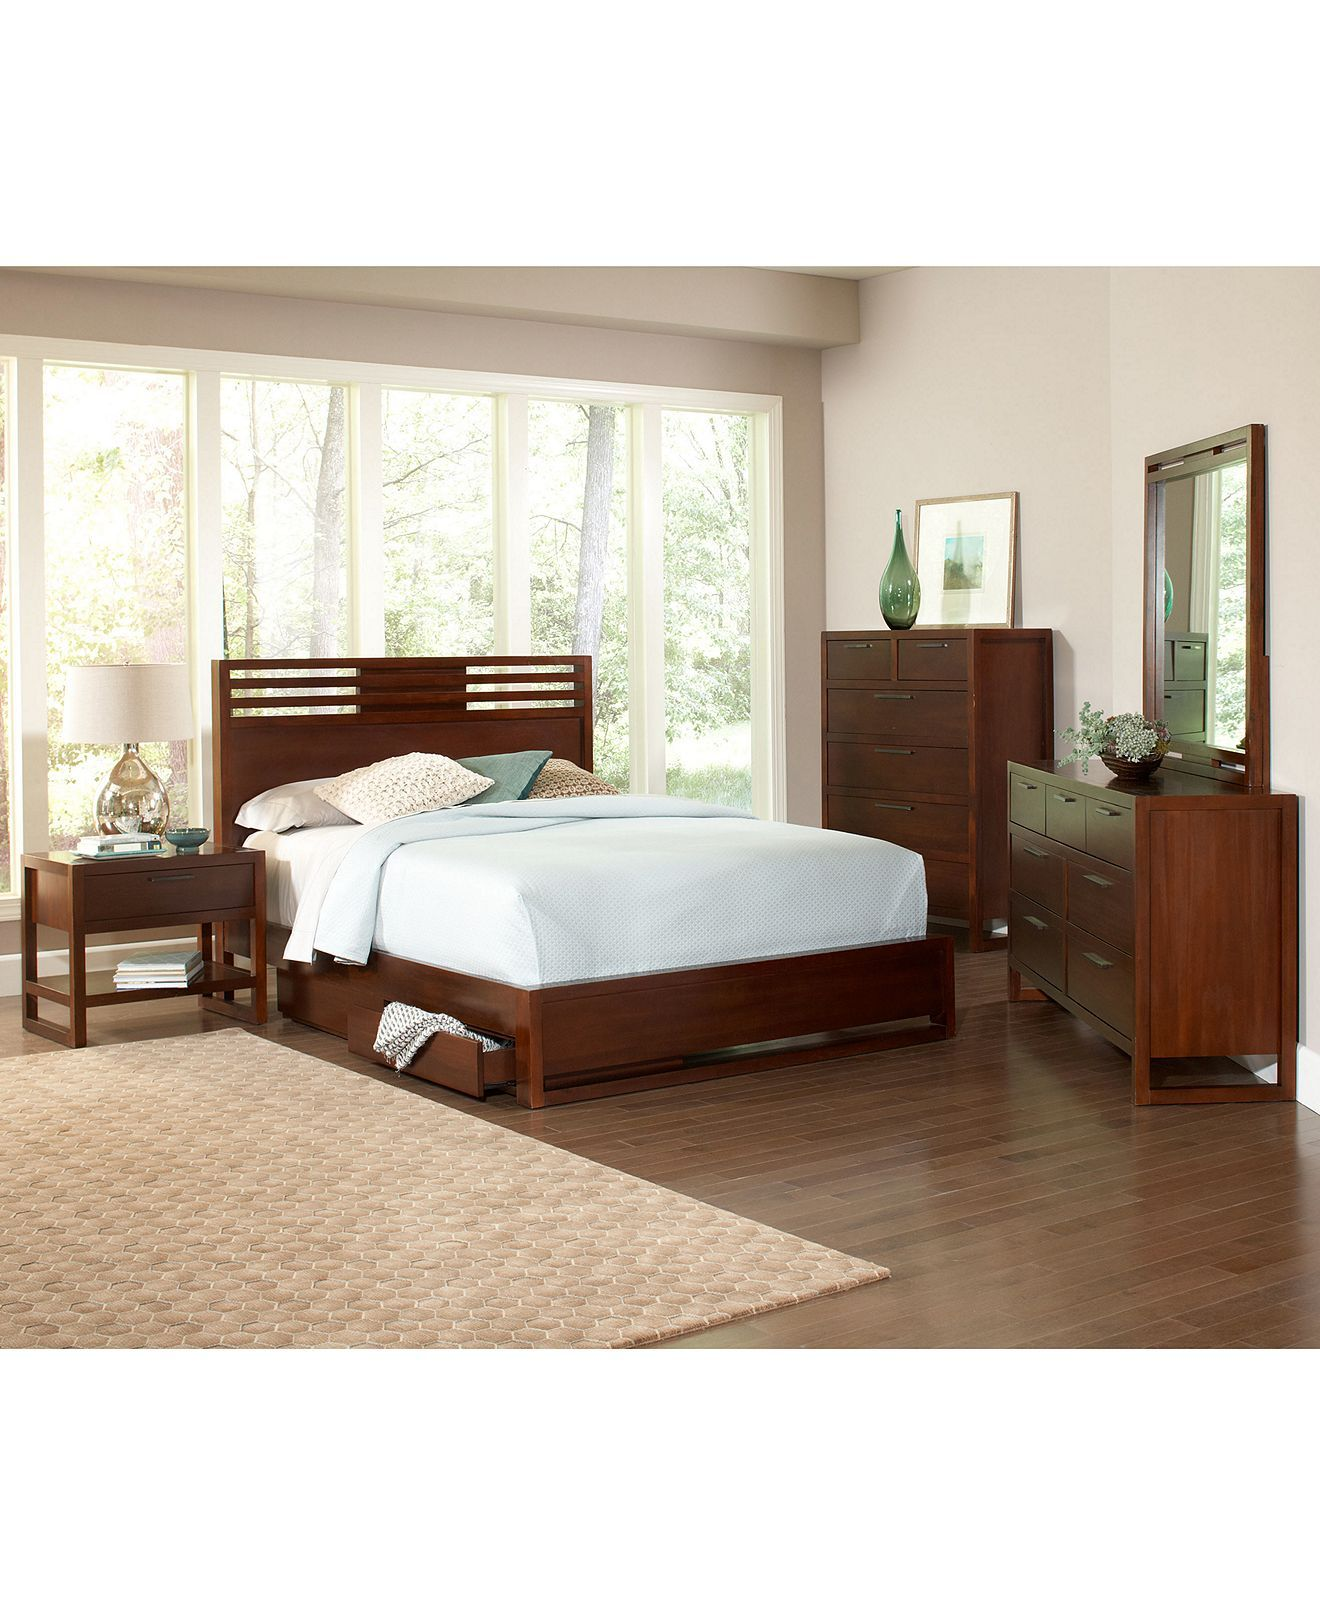 Tahoe Copper Bedroom Furniture Collection   Bedroom Furniture   Furniture    Macyu0027s